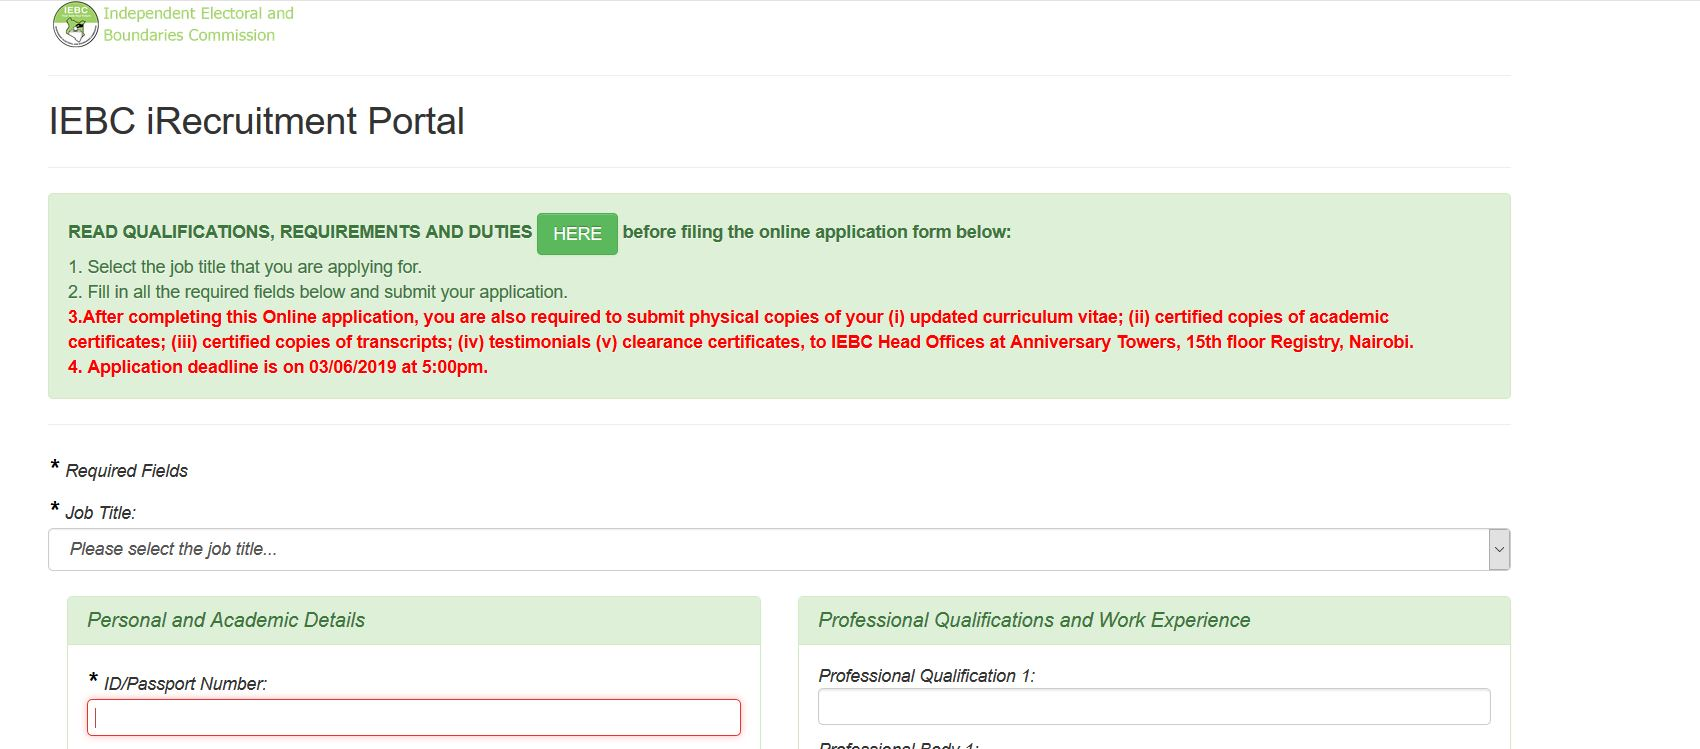 IEBC iRecruitment Portal and how to apply for jobs Guide